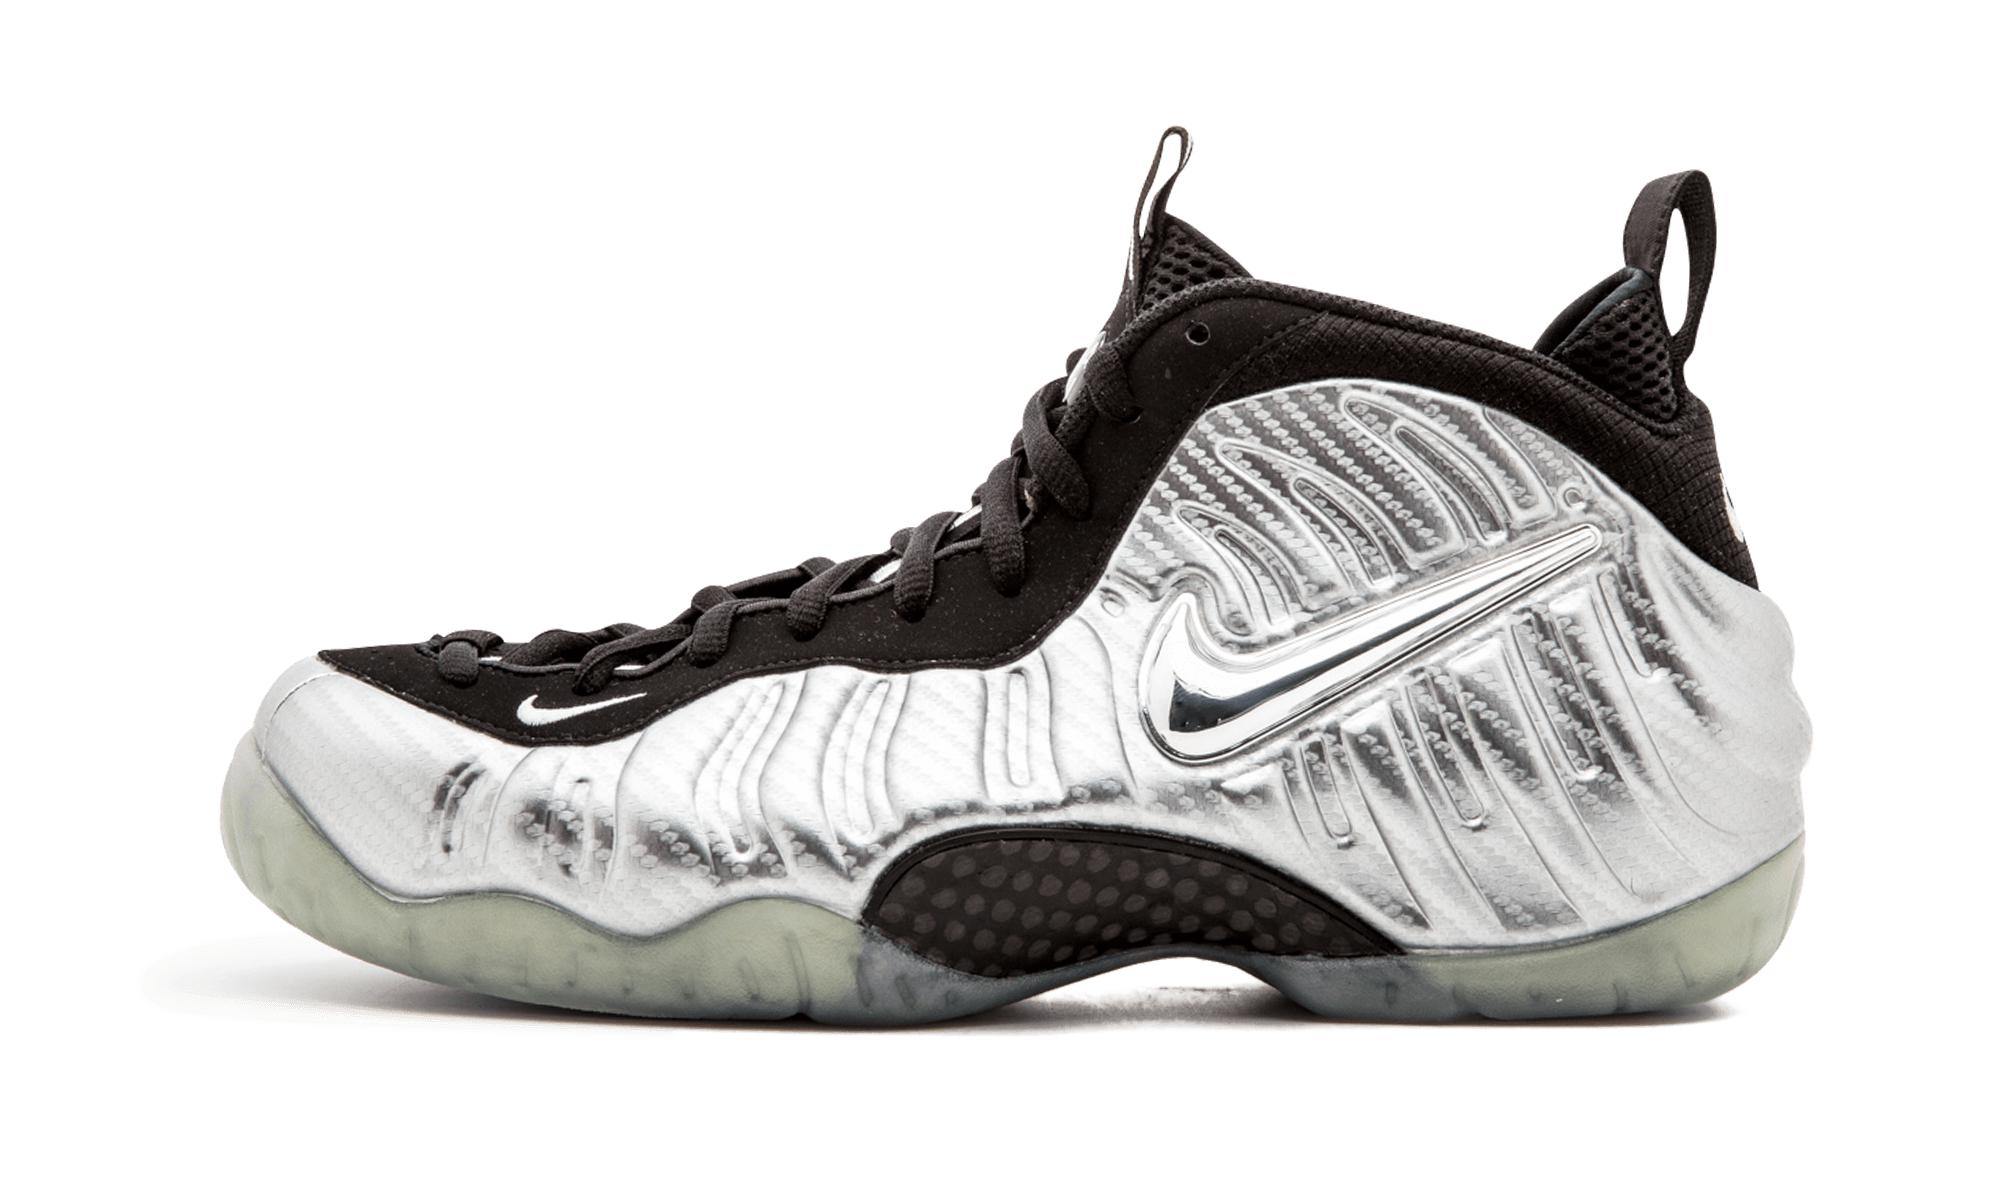 0b109658f8868 Nike Air Foamposite Pro Basketball Shoe 8 Us in Metallic for Men - Lyst